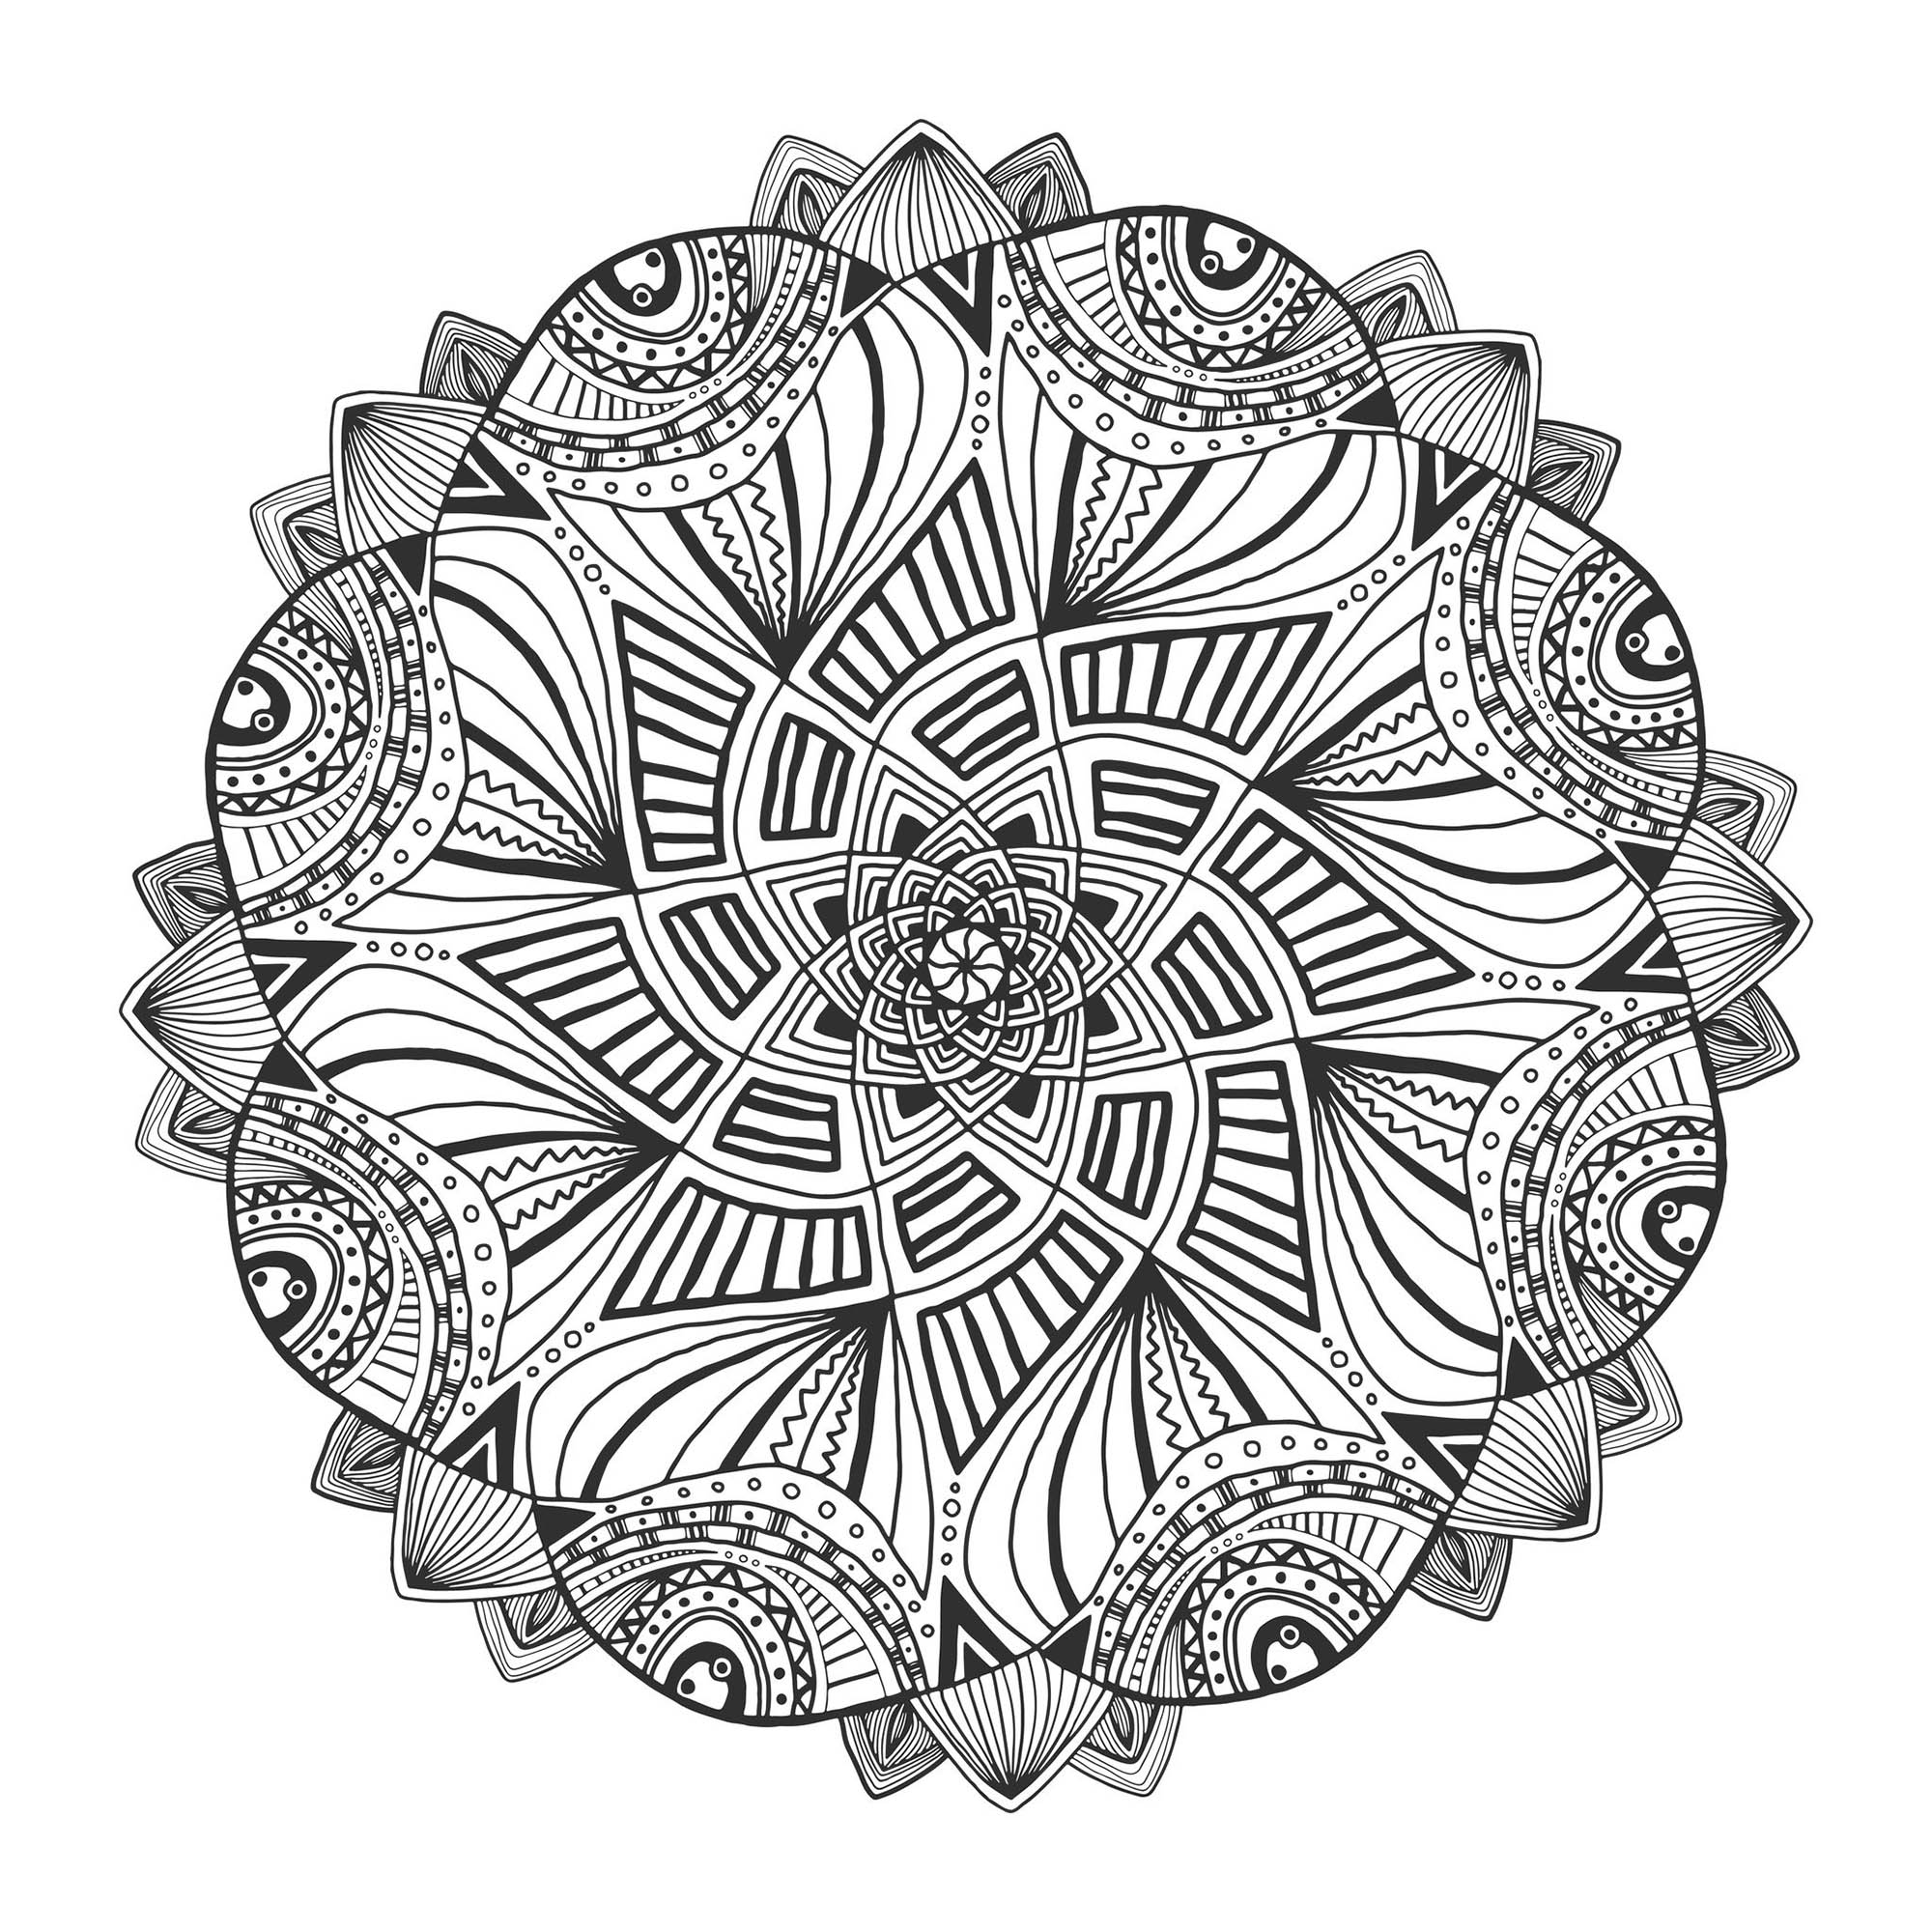 mandalas to color for adults mandala with geometric patterns and wolf head full of for mandalas color to adults